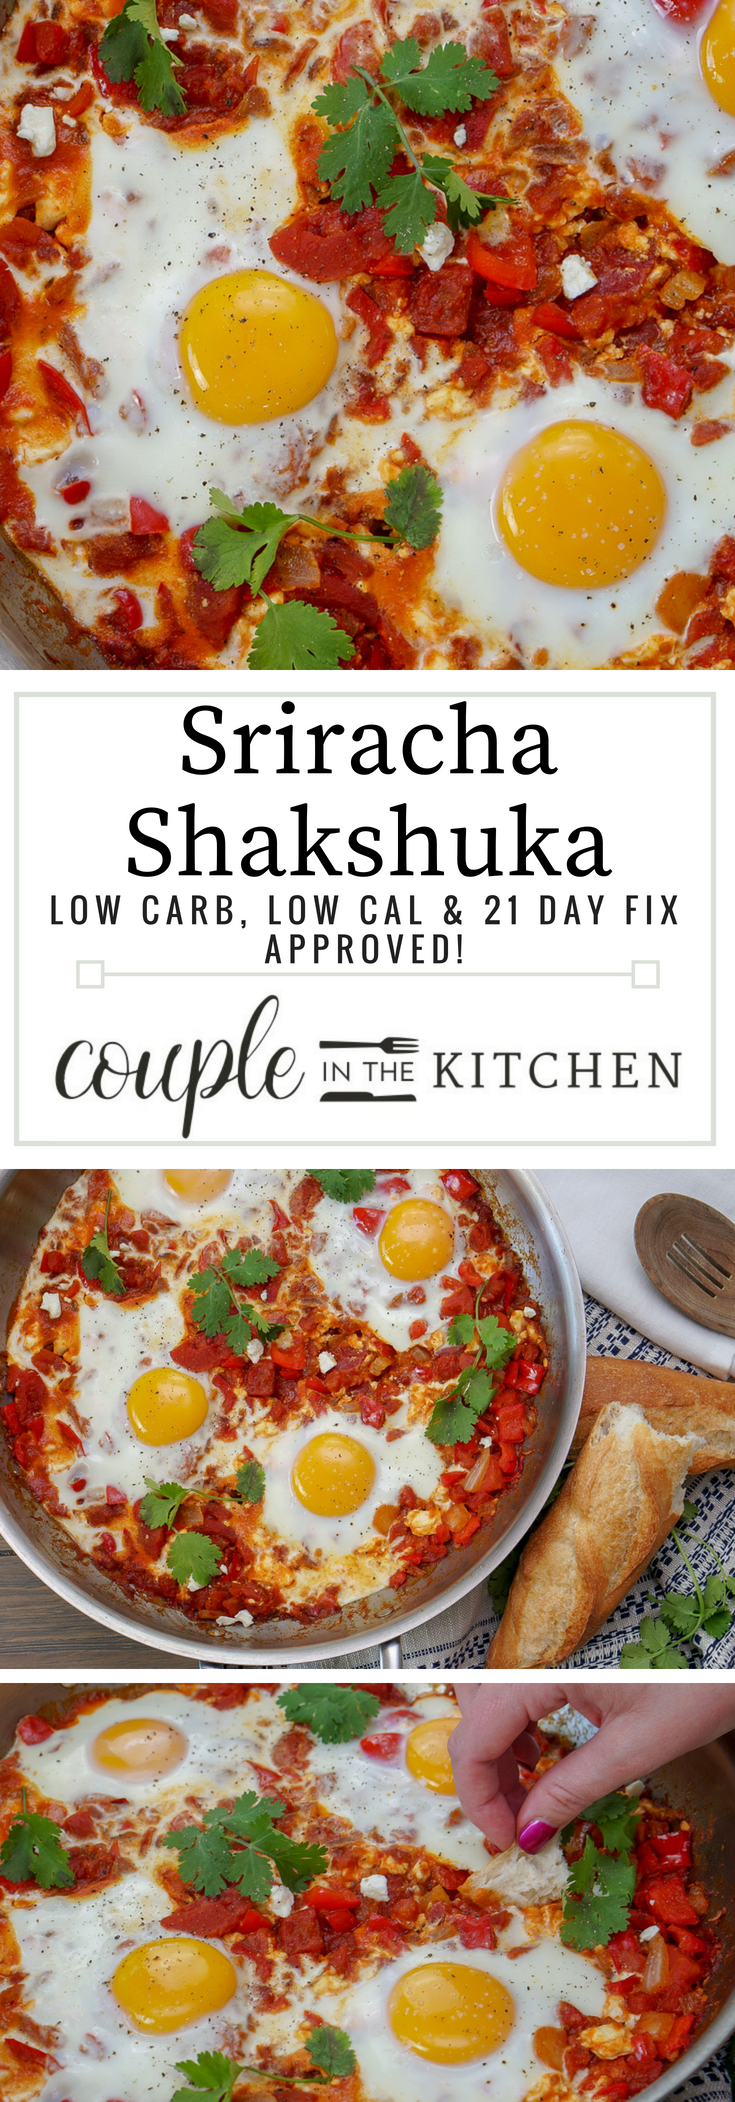 Healthy, Sriracha Shakshuka Recipe | coupleinthekitchen.com